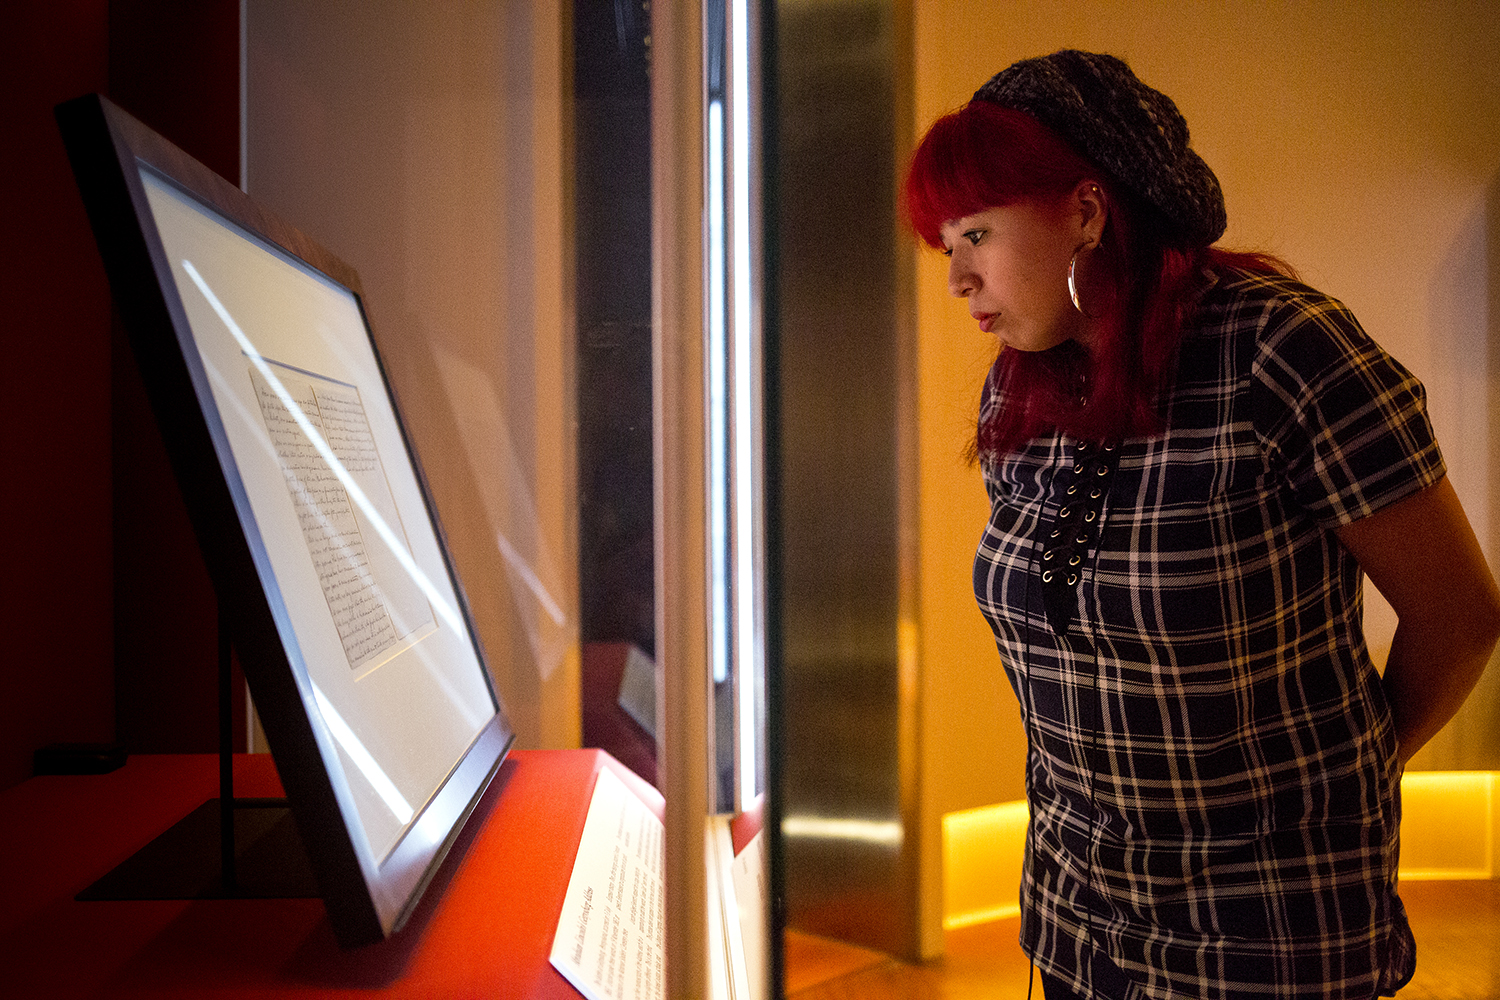 """""""Lincoln was my favorite president,"""" Maritza Cazares said while viewing a copy of the Gettysburg Address on display at the Abraham Lincoln Presidential Museum Monday, Nov. 13, 2017. """"I don't think I'll ever forget this experience,"""" she added, impressed by the historic document written by Lincoln himself. The address will be on display until Nov. 26 and is part of the Lincoln Presidential Library's plans to observe the  anniversary of the speech given by Lincoln on Nov. 19, 1863 at the dedication of a cemetery for soldiers killed in the Battle of Gettysburg in Pennsylvania.  [Rich Saal/The State Journal-Register]"""